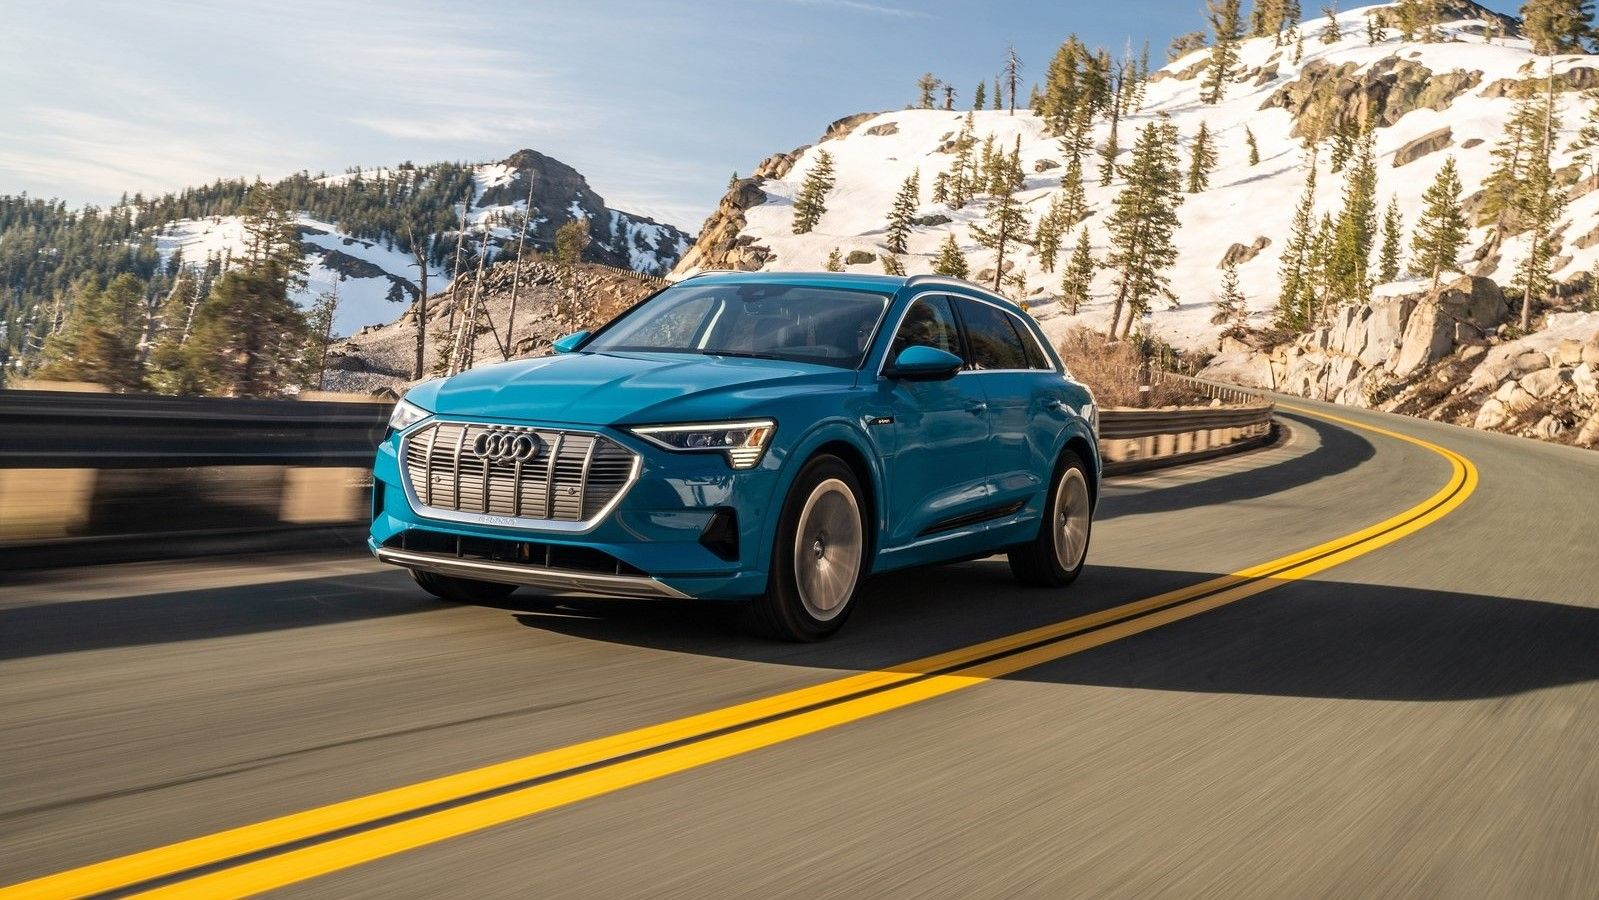 2020 Audi E-Tron Front Three-Quarter View